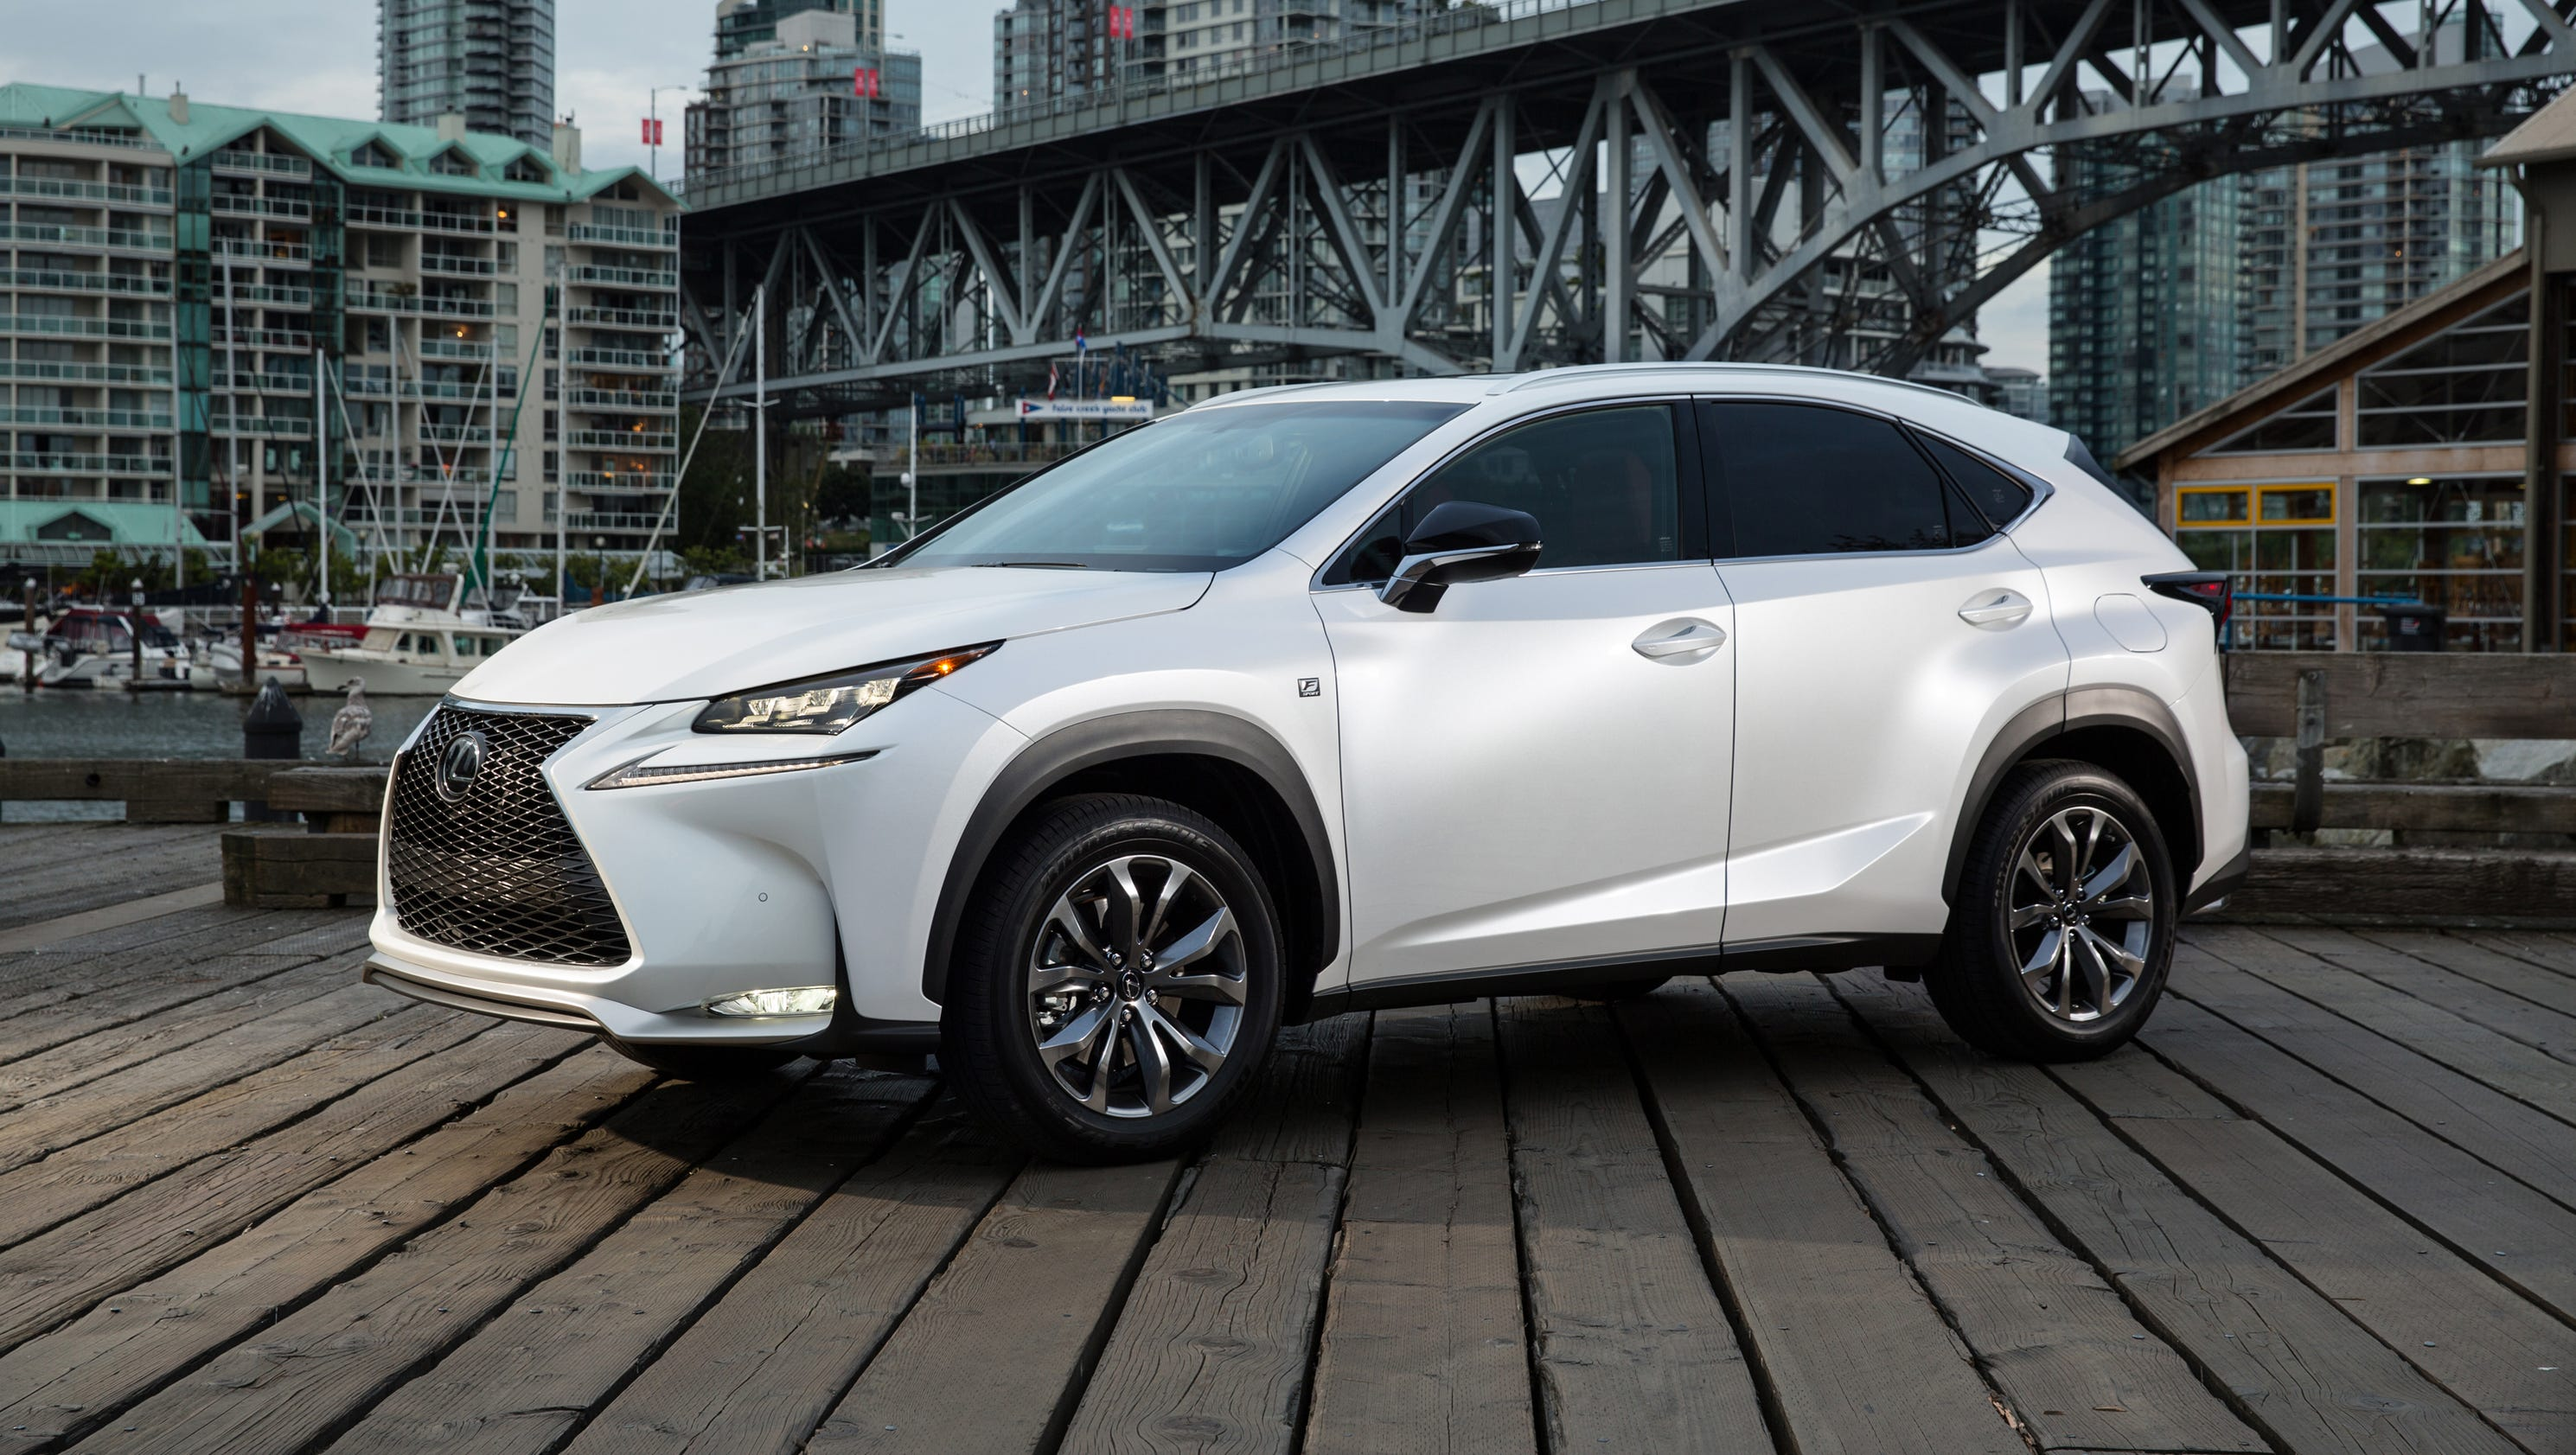 european news at show for makes lexus debut paris sale is photos motor